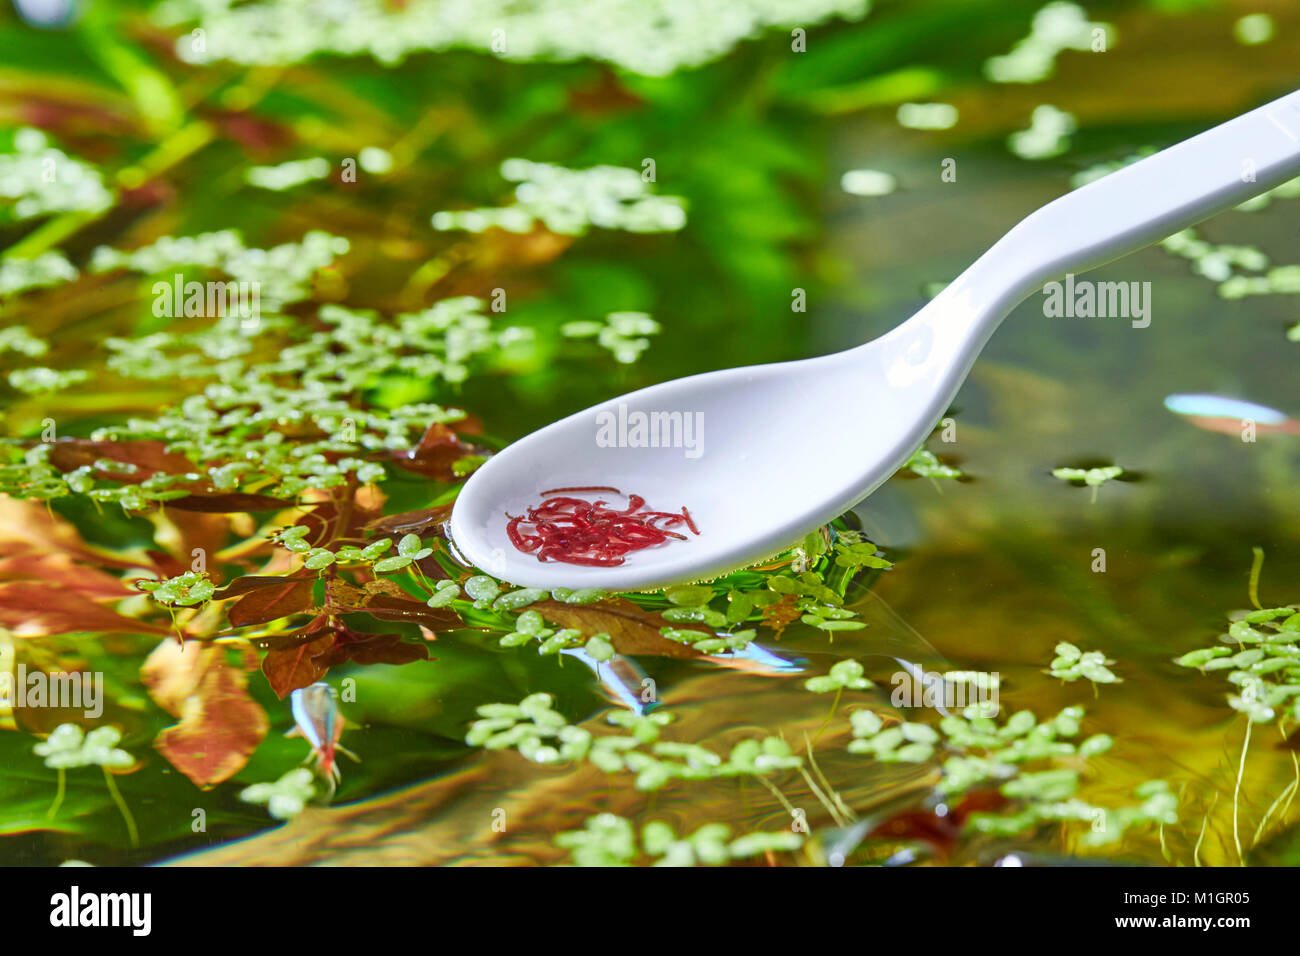 Bloodworms stock photos bloodworms stock images alamy for Bloodworms fish food